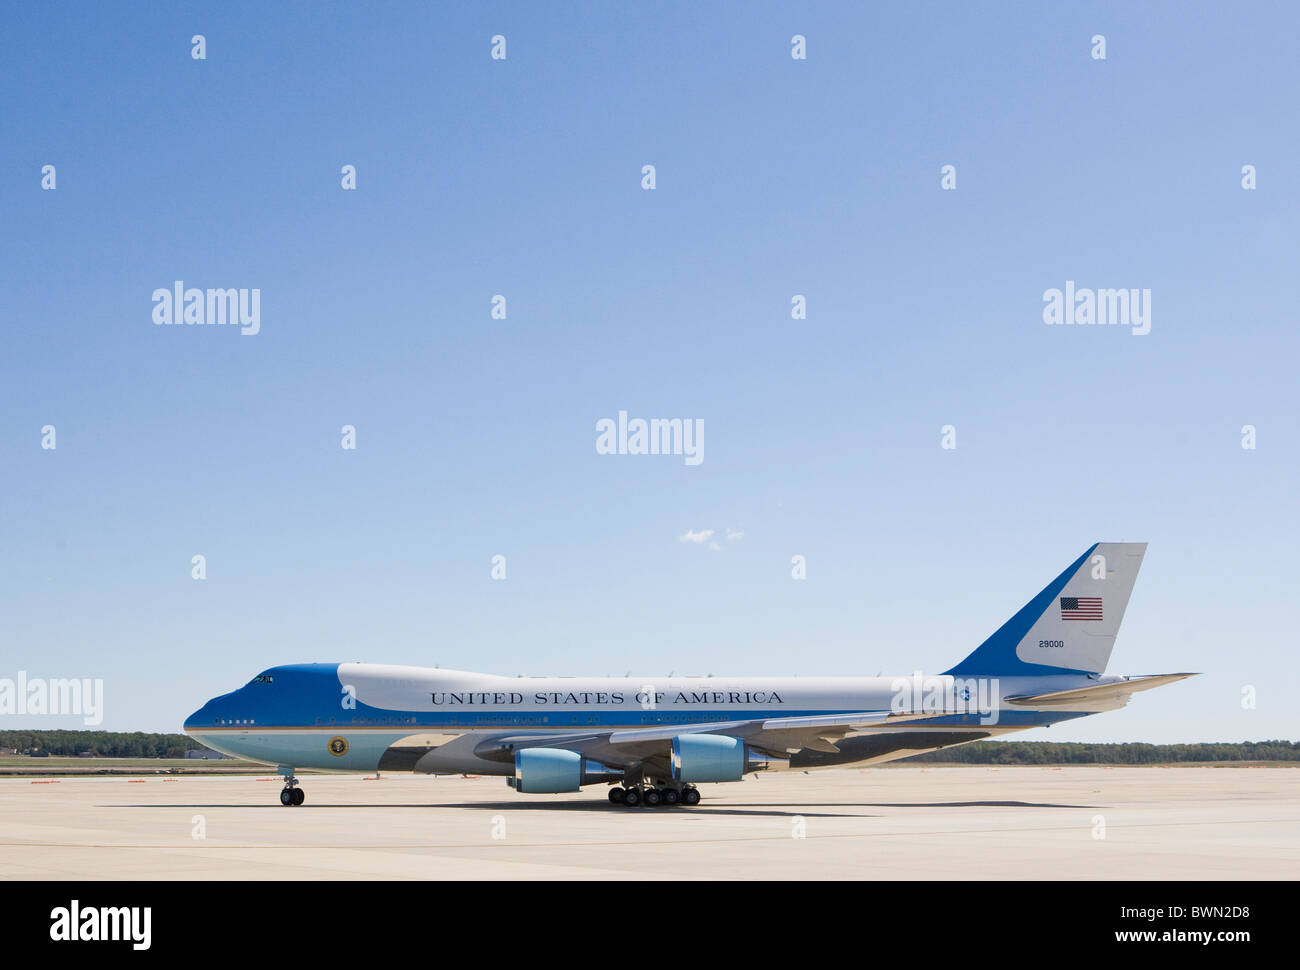 Air Force One on the tarmac at Andrews Air Force Base. - Stock Image